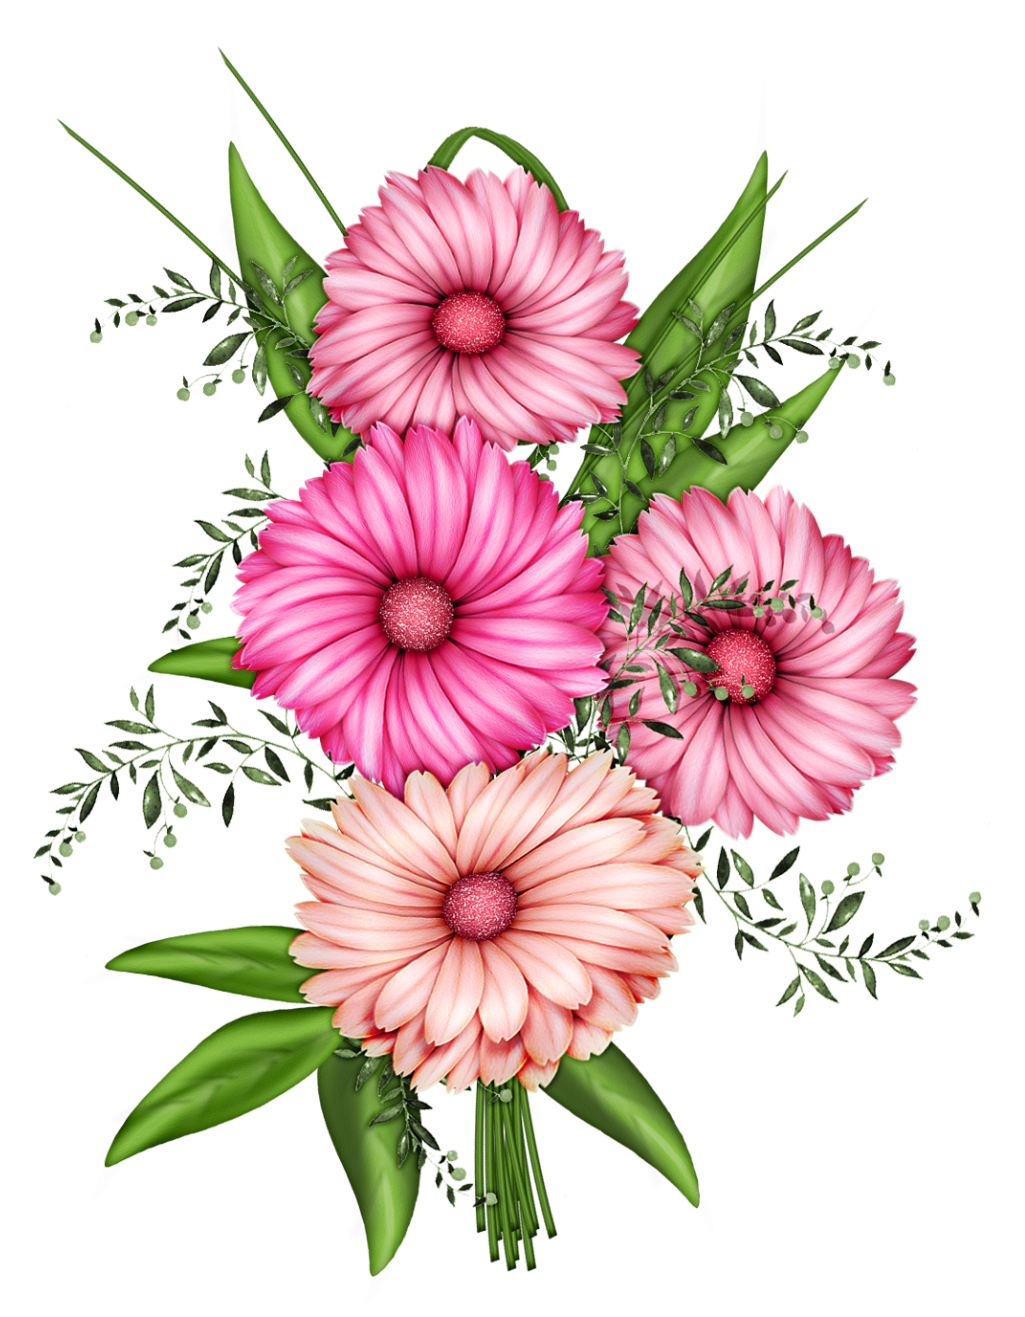 Flower in clipart. Flowers transparent png pinterest